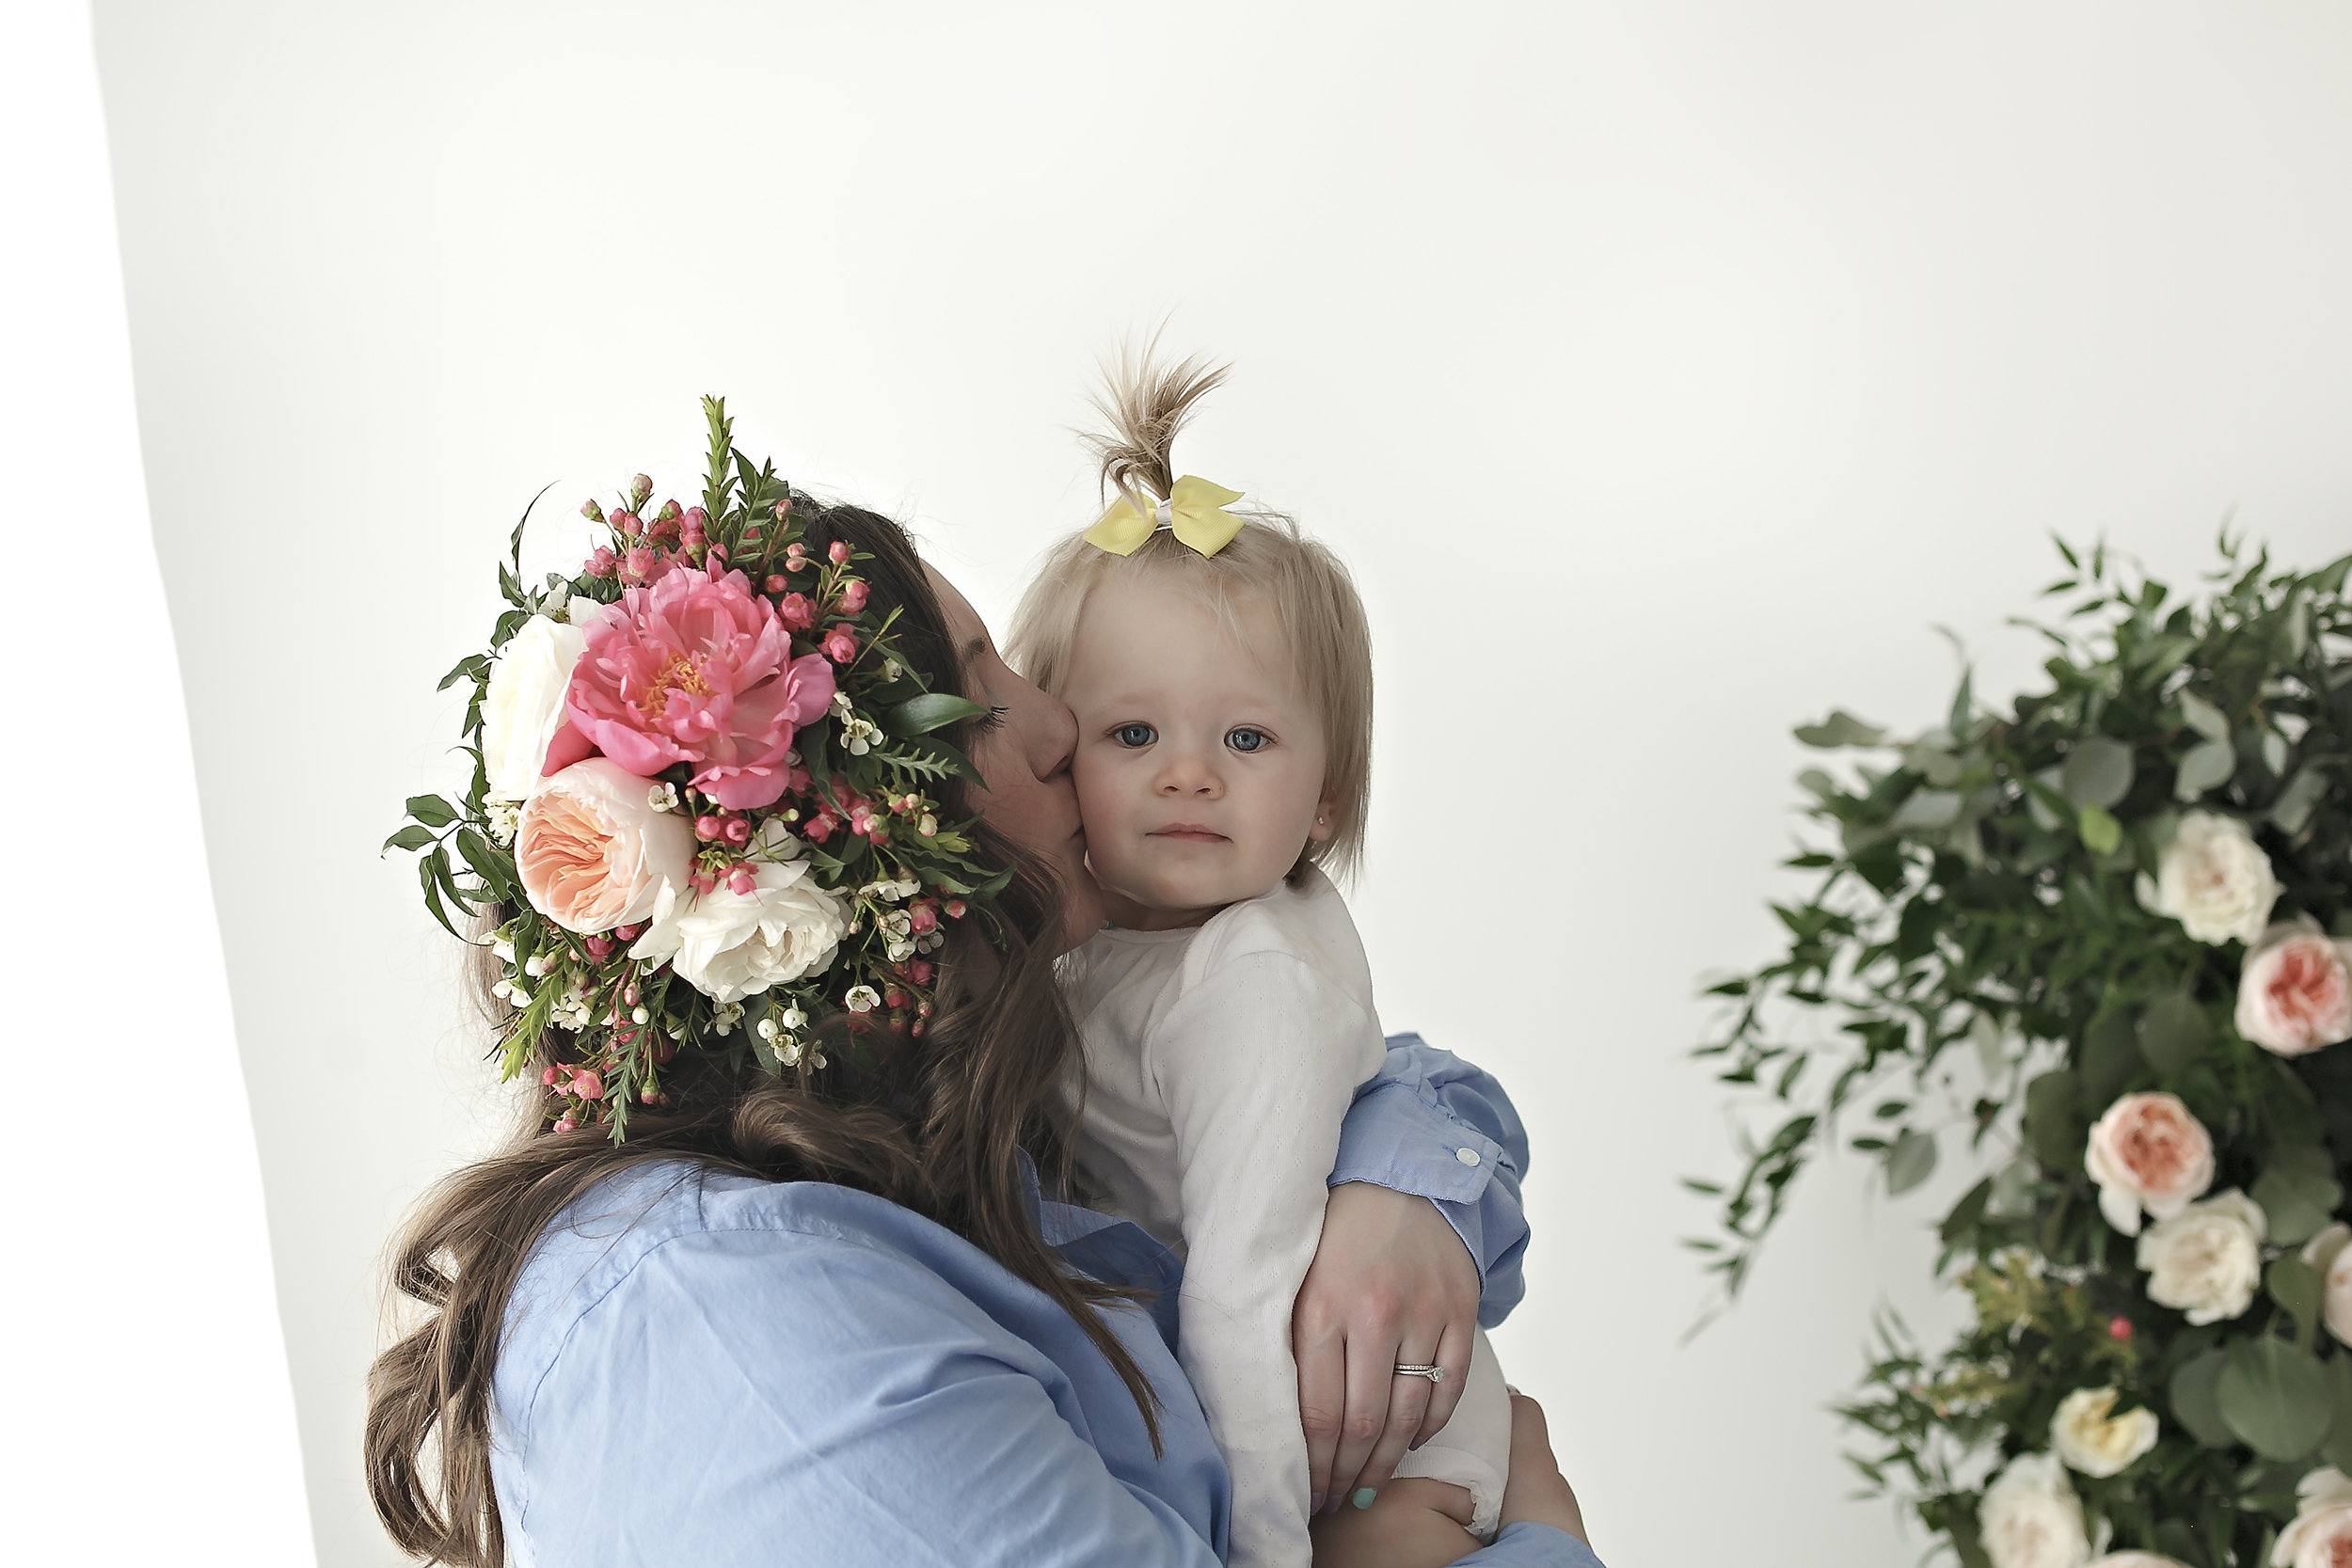 Petra_King_Photography_StyledBabyPhotographer.jpg